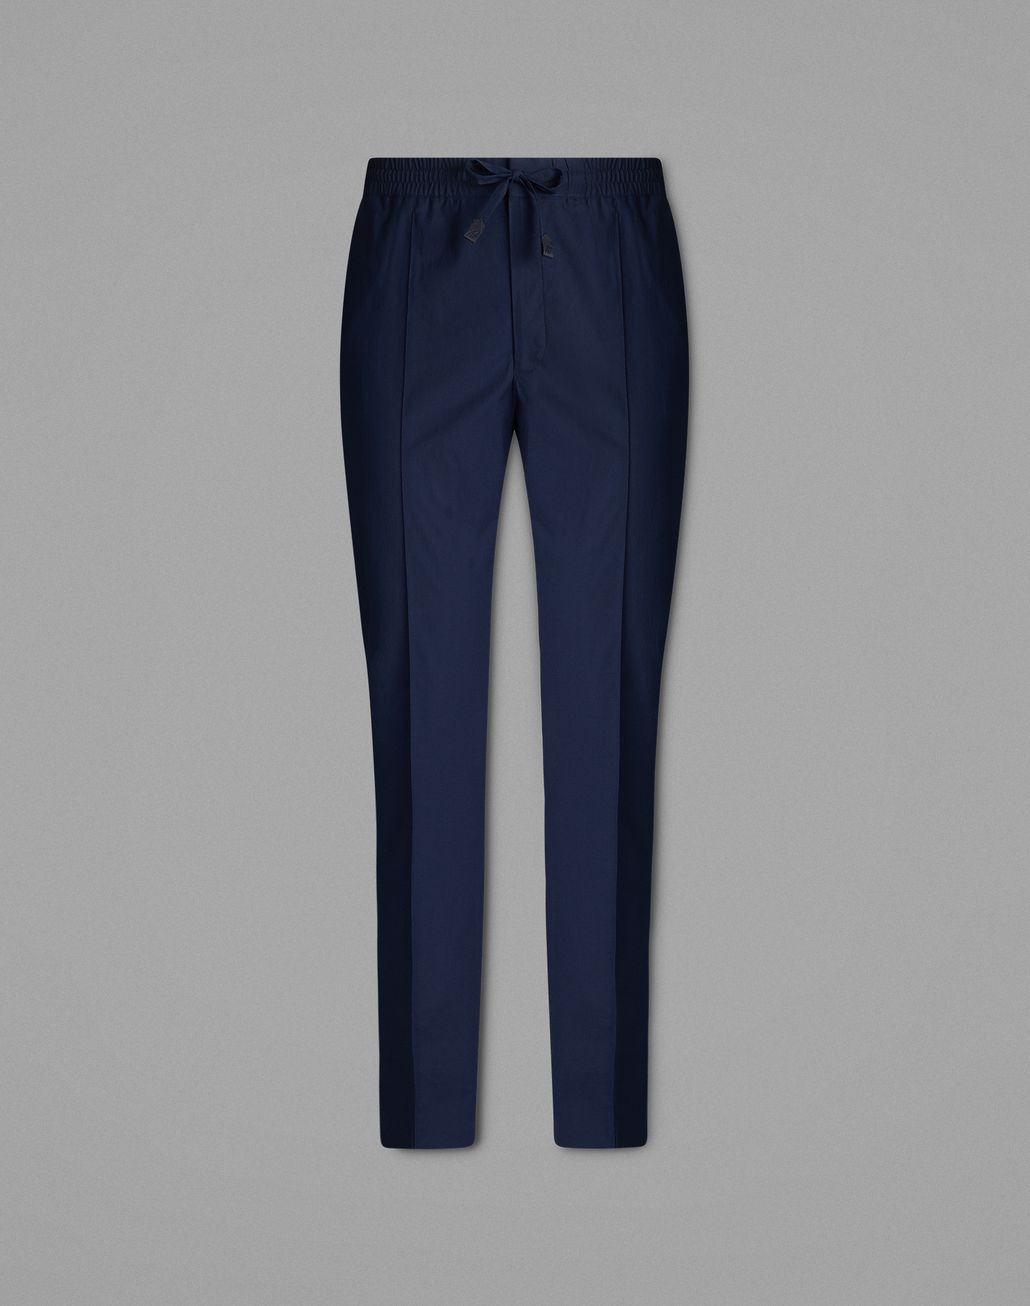 BRIONI Navy Blue Trousers Trousers Man f